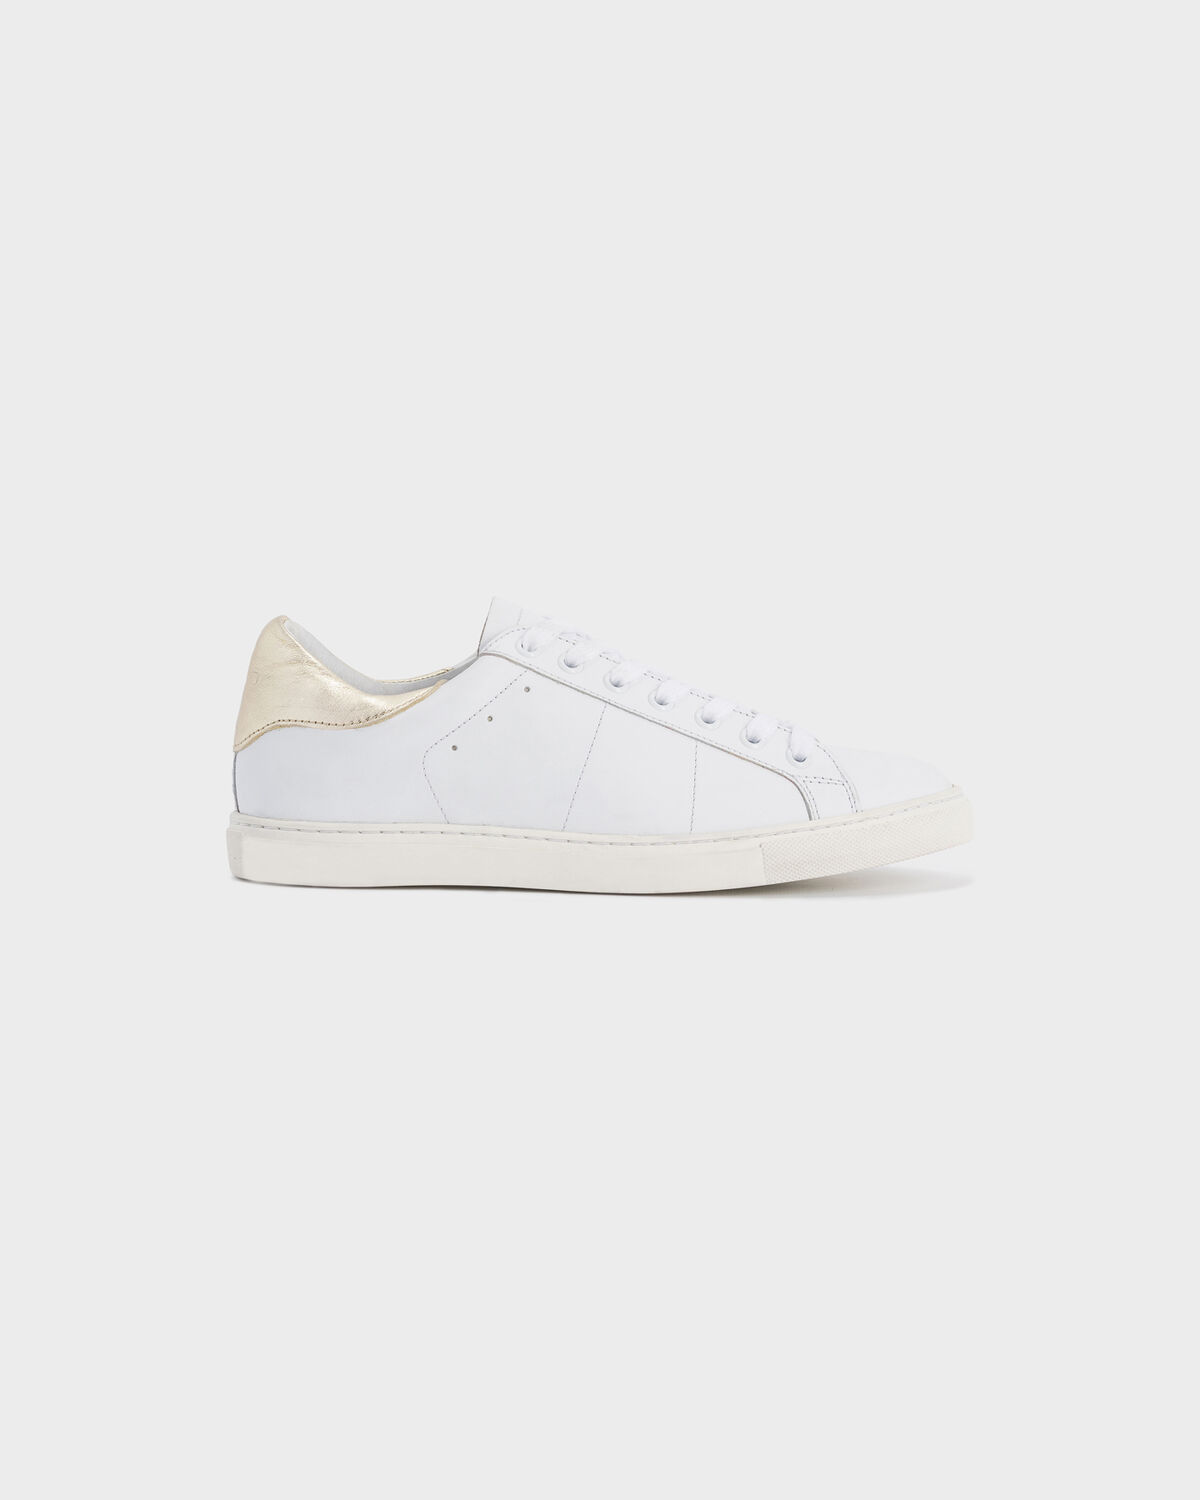 IRO - BASIC SNEAKERS WHITE/GOLD